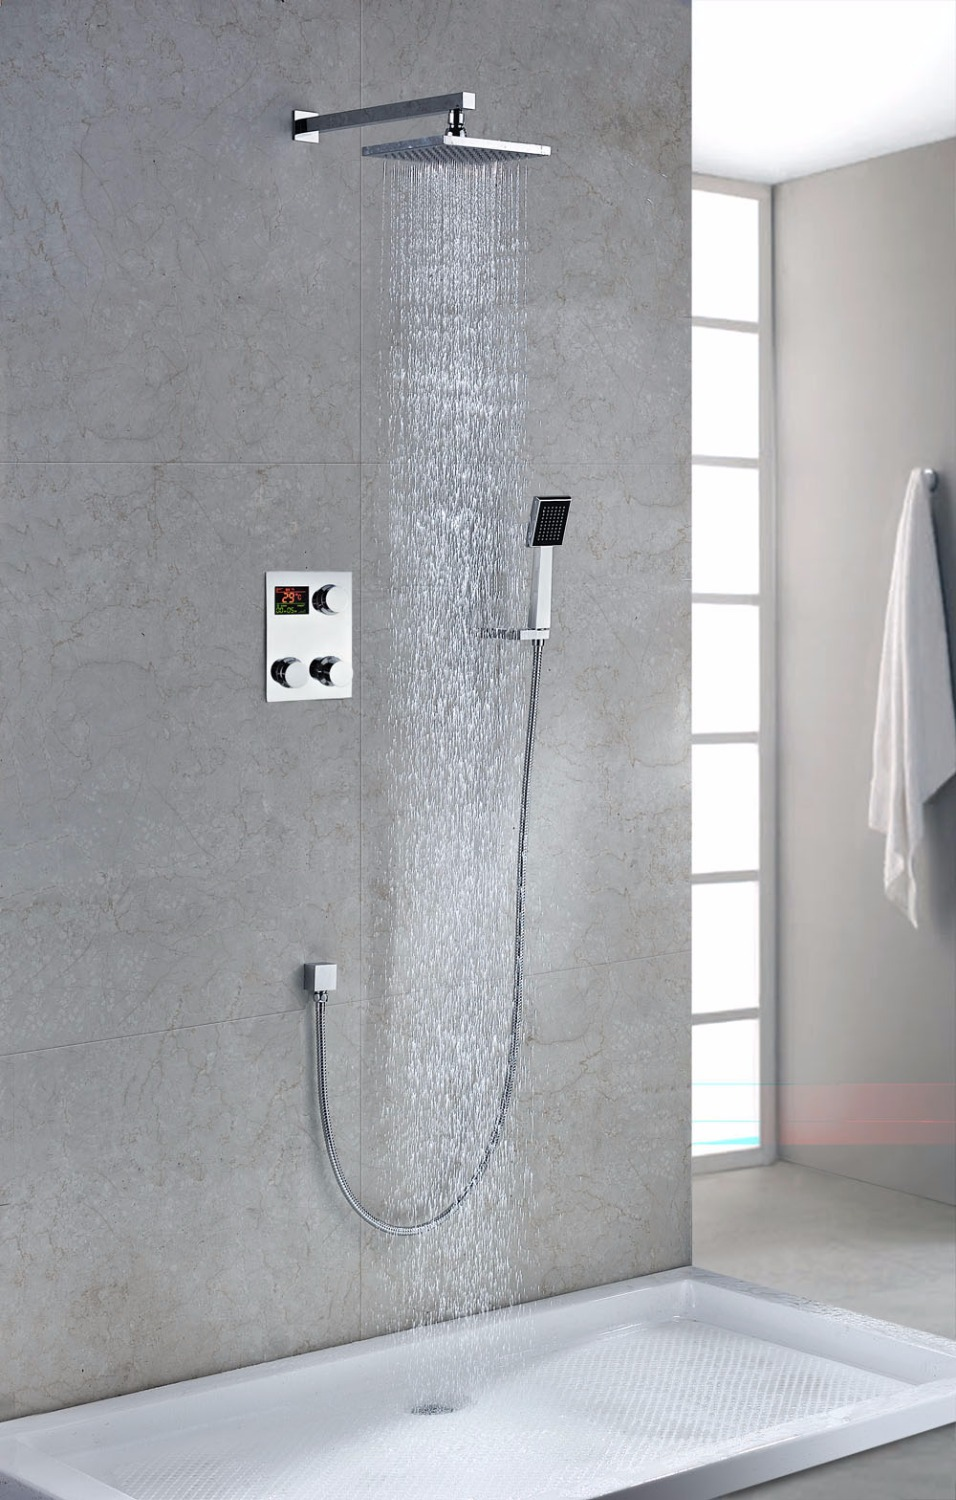 Luxury digital thermostatic in wall shower set faucet mixer tap torneira banheira esmalte kpah with 5 years guarantee(China (Mainland))